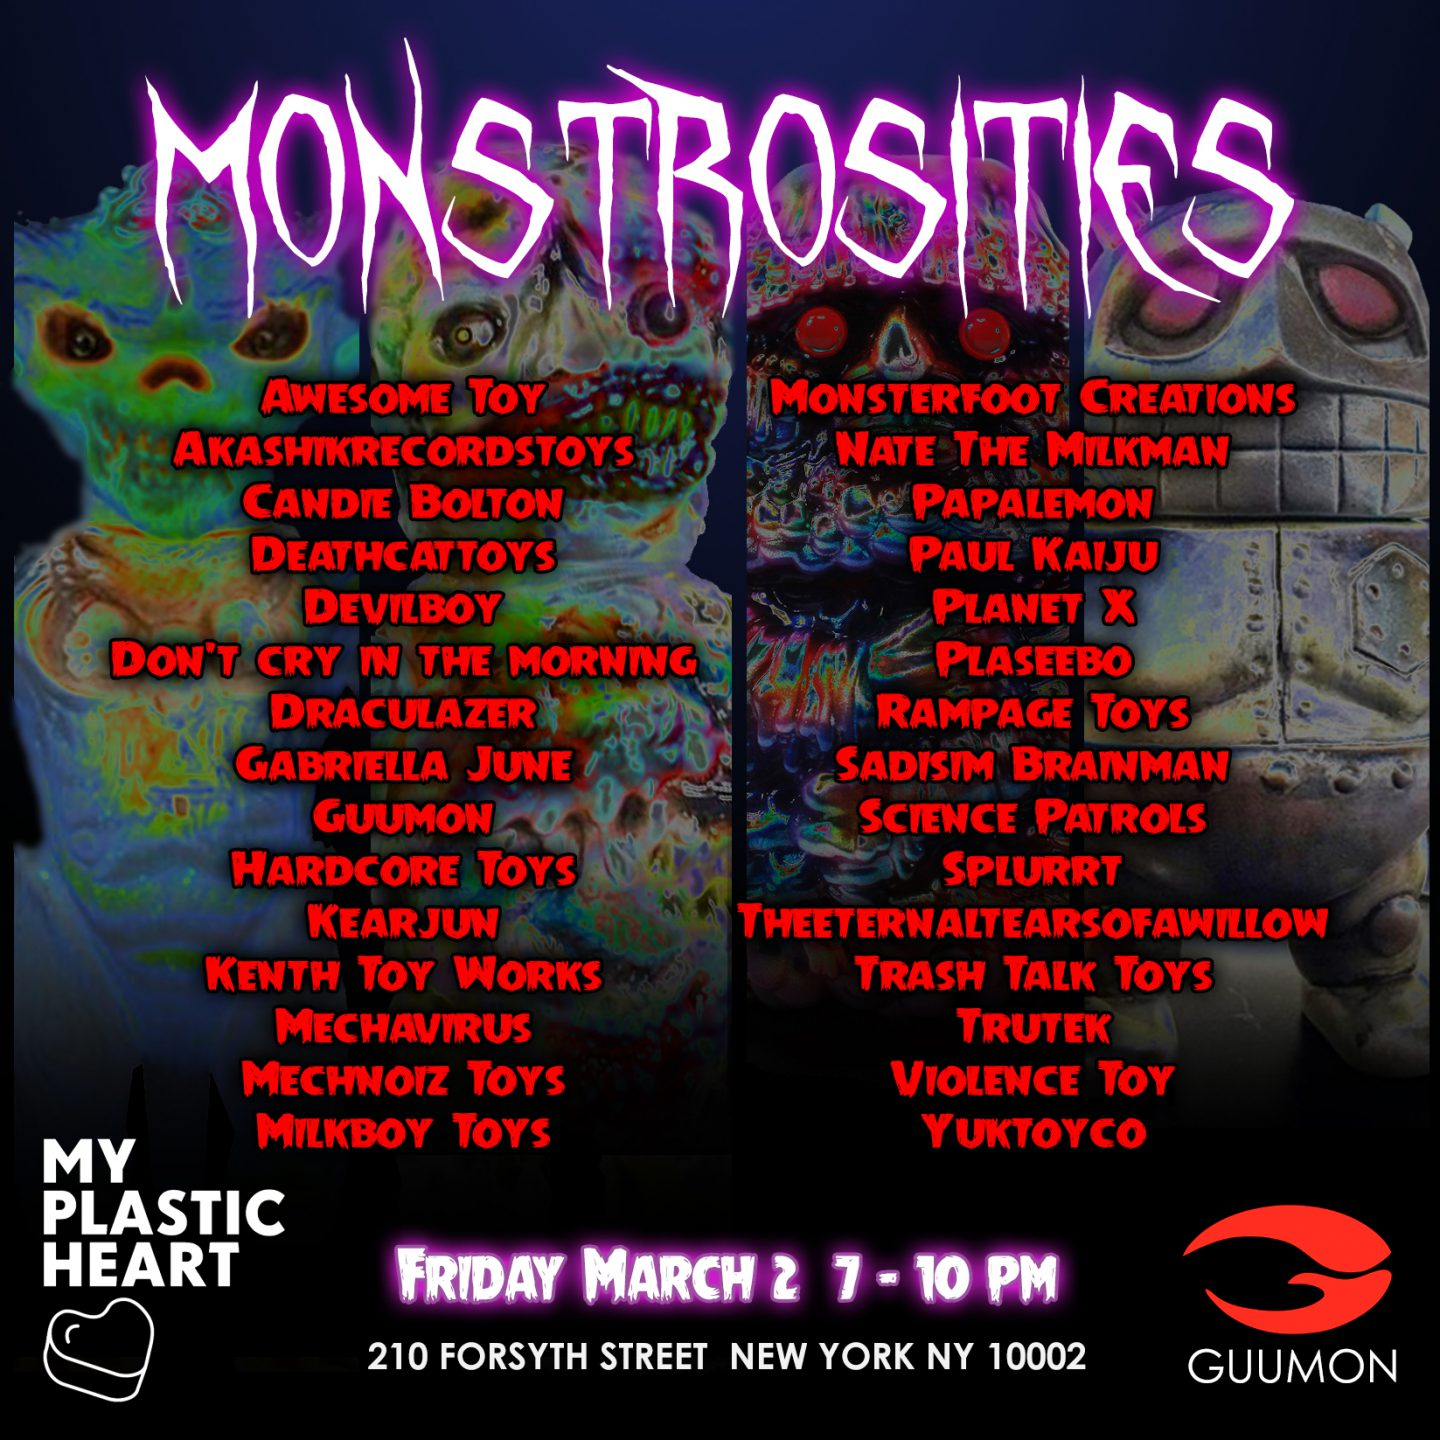 Monstrosities 2018 opens March 2nd